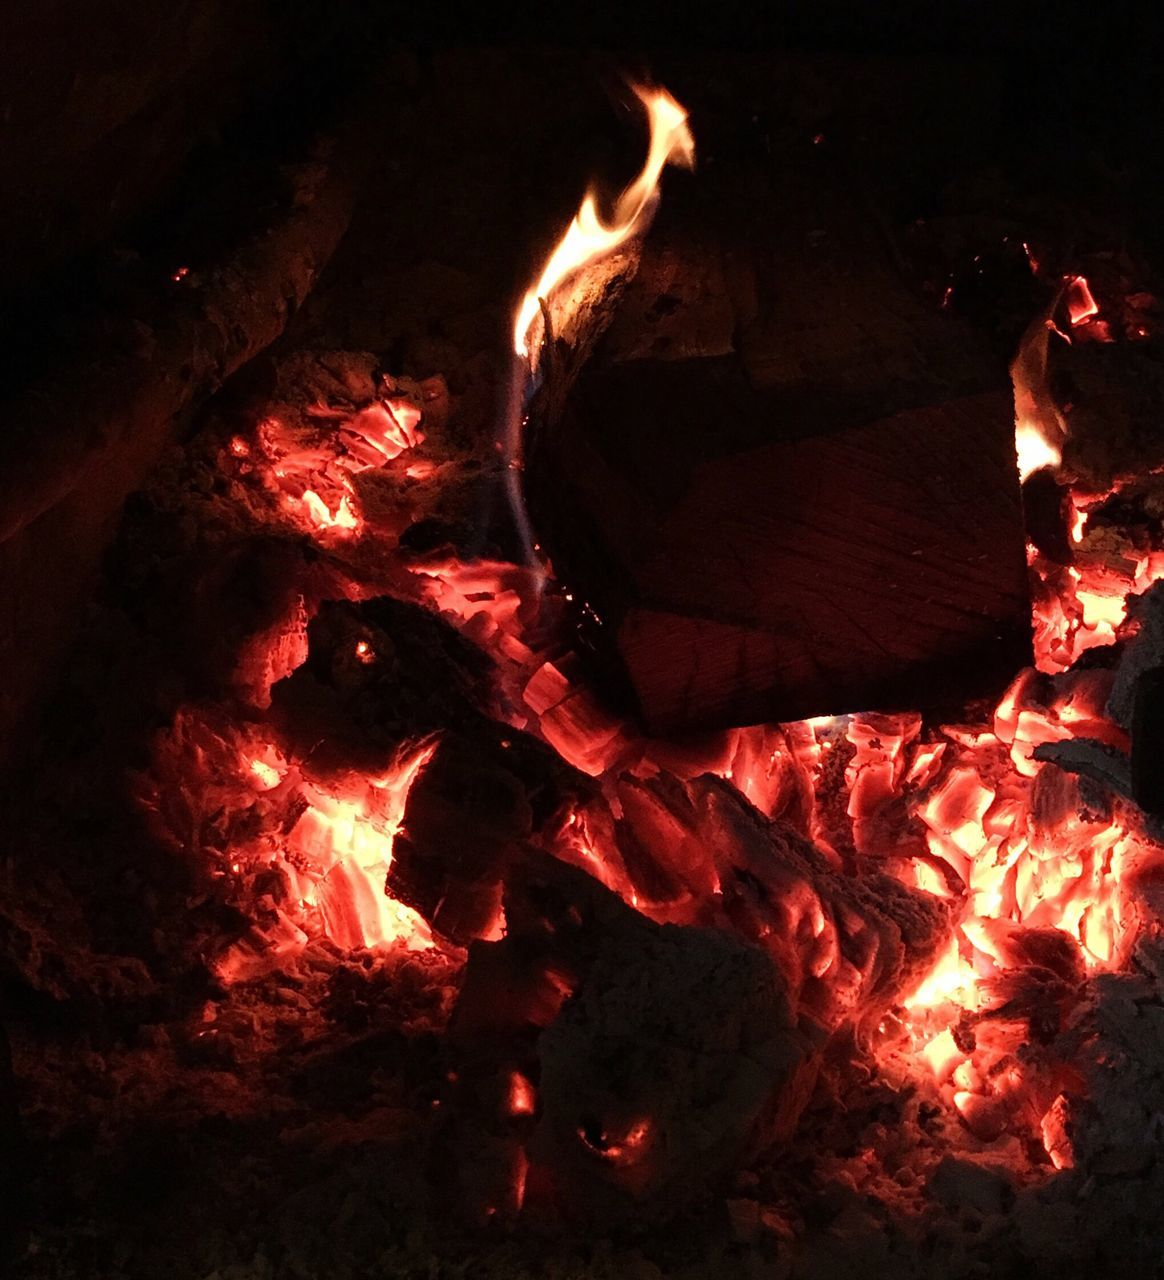 heat - temperature, flame, burning, glowing, night, fire, bonfire, no people, full frame, outdoors, close-up, nature